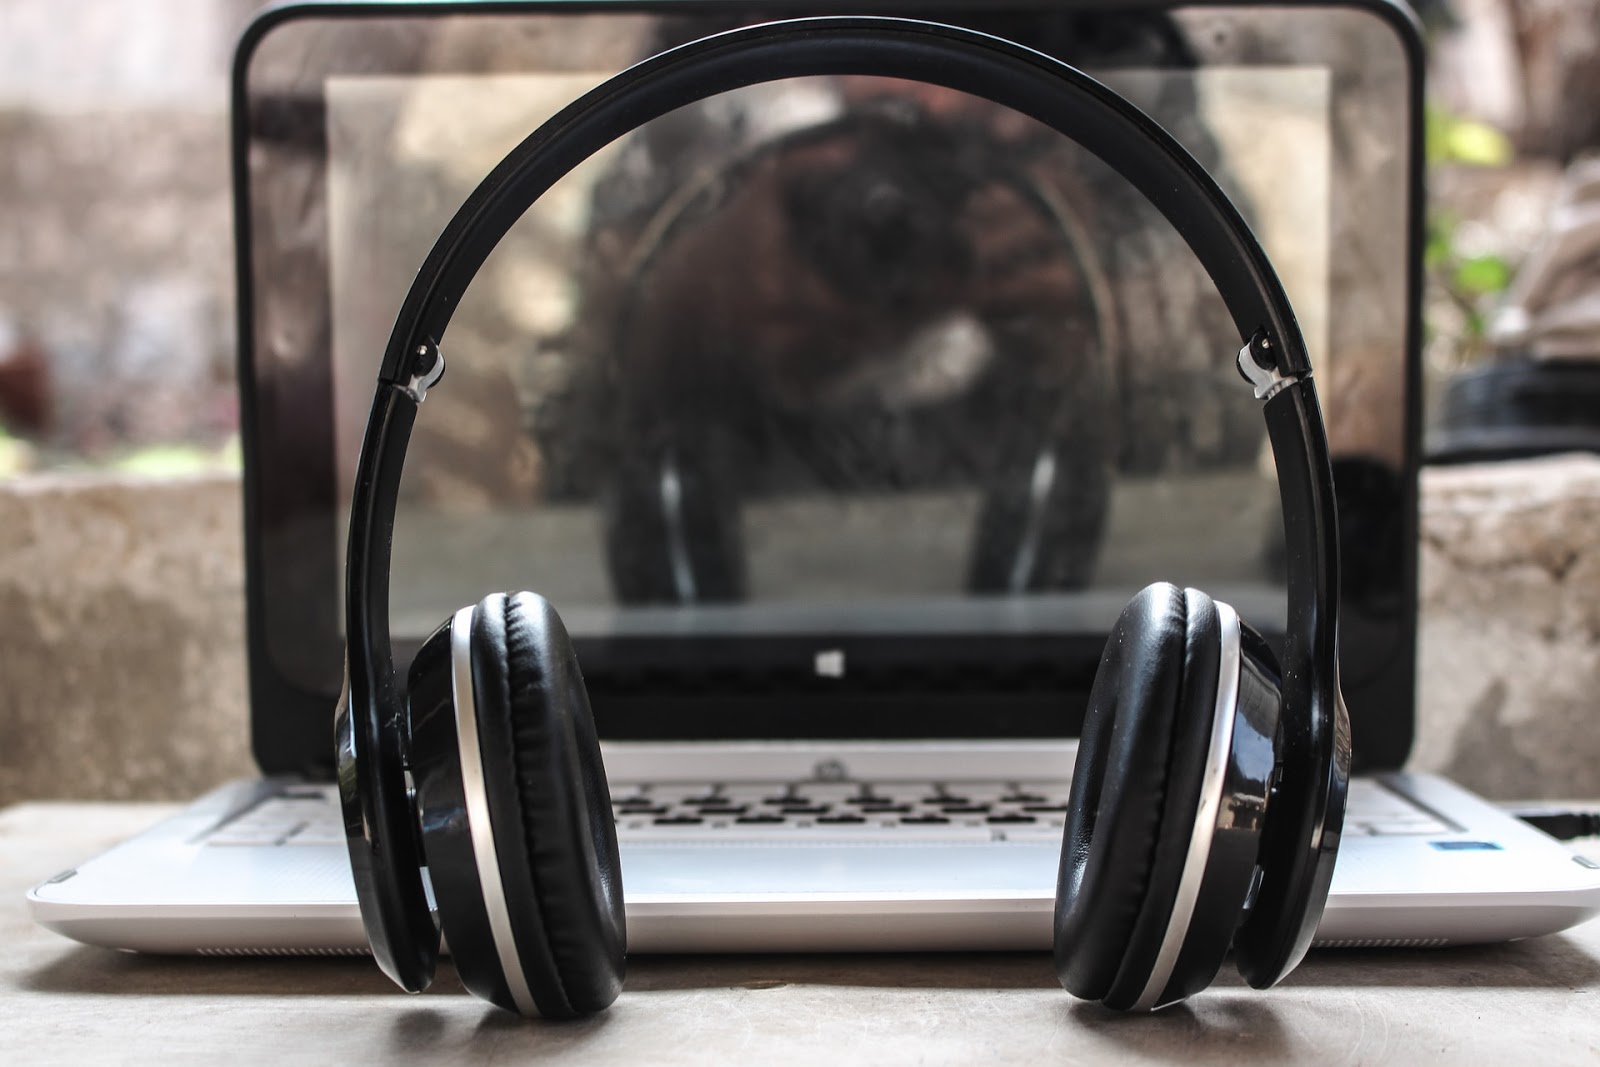 headphones placed in front of a laptop